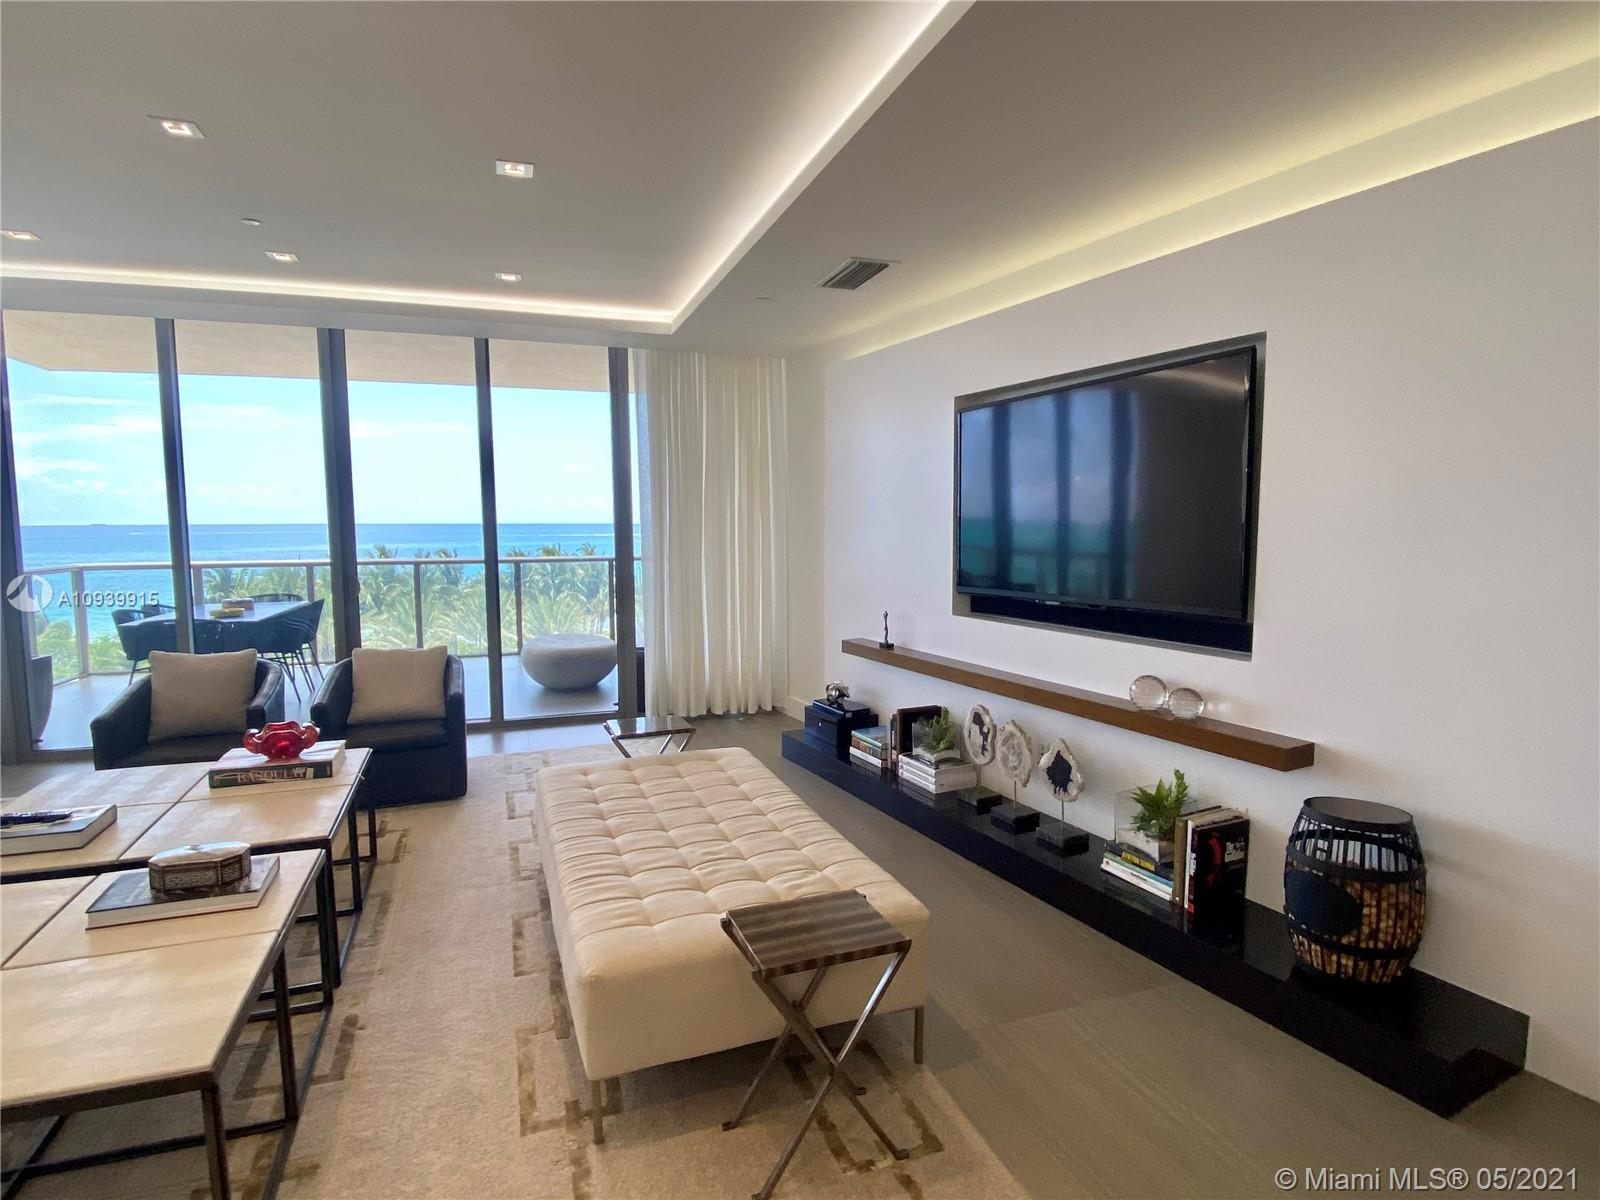 Sophisticated most desirable & best prices corner residence offered furnished. Professionally designed & decorated by Steven G with 3 spacious bedrooms + DEN, oversized master suite with sitting area & large en-suite bedrooms, media/family room, breakfast nook, formal dining room, large laundry room & 3 private terraces. Kitchen offers 2 sinks, 2 refrigerators, 2 wall ovens & 2 dishwashers as well as built-in wine refrigerator & coffee maker. Sub Zero appliances. 5-star amenities such as 24 hour concierge, room service, private oceanfront cabanas, 4 pools, 3 private restaurants, 14,000 SF Remede Spa & much more.